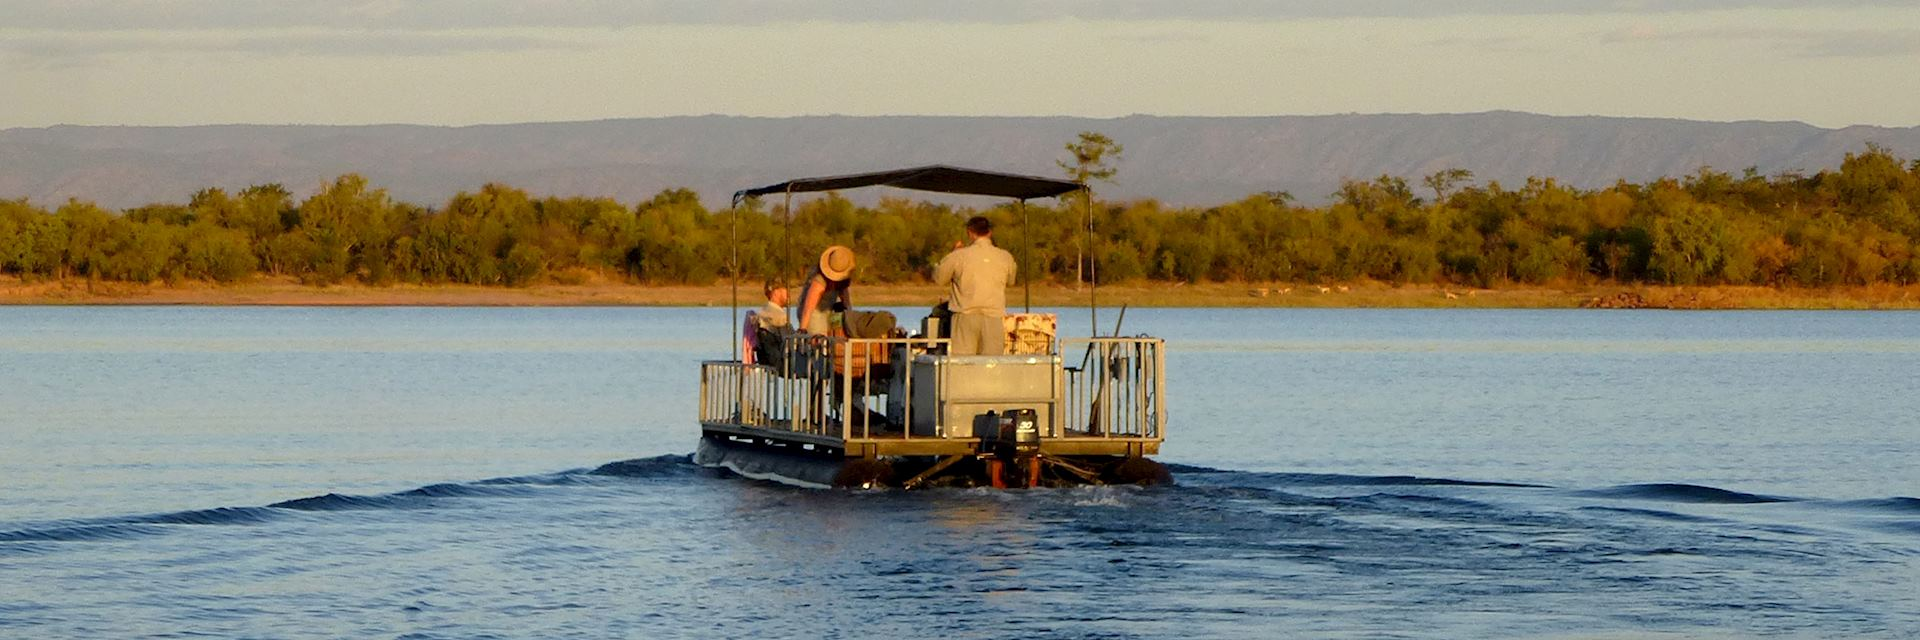 Evening boat safari from Musango Safari Camp, Lake Kariba